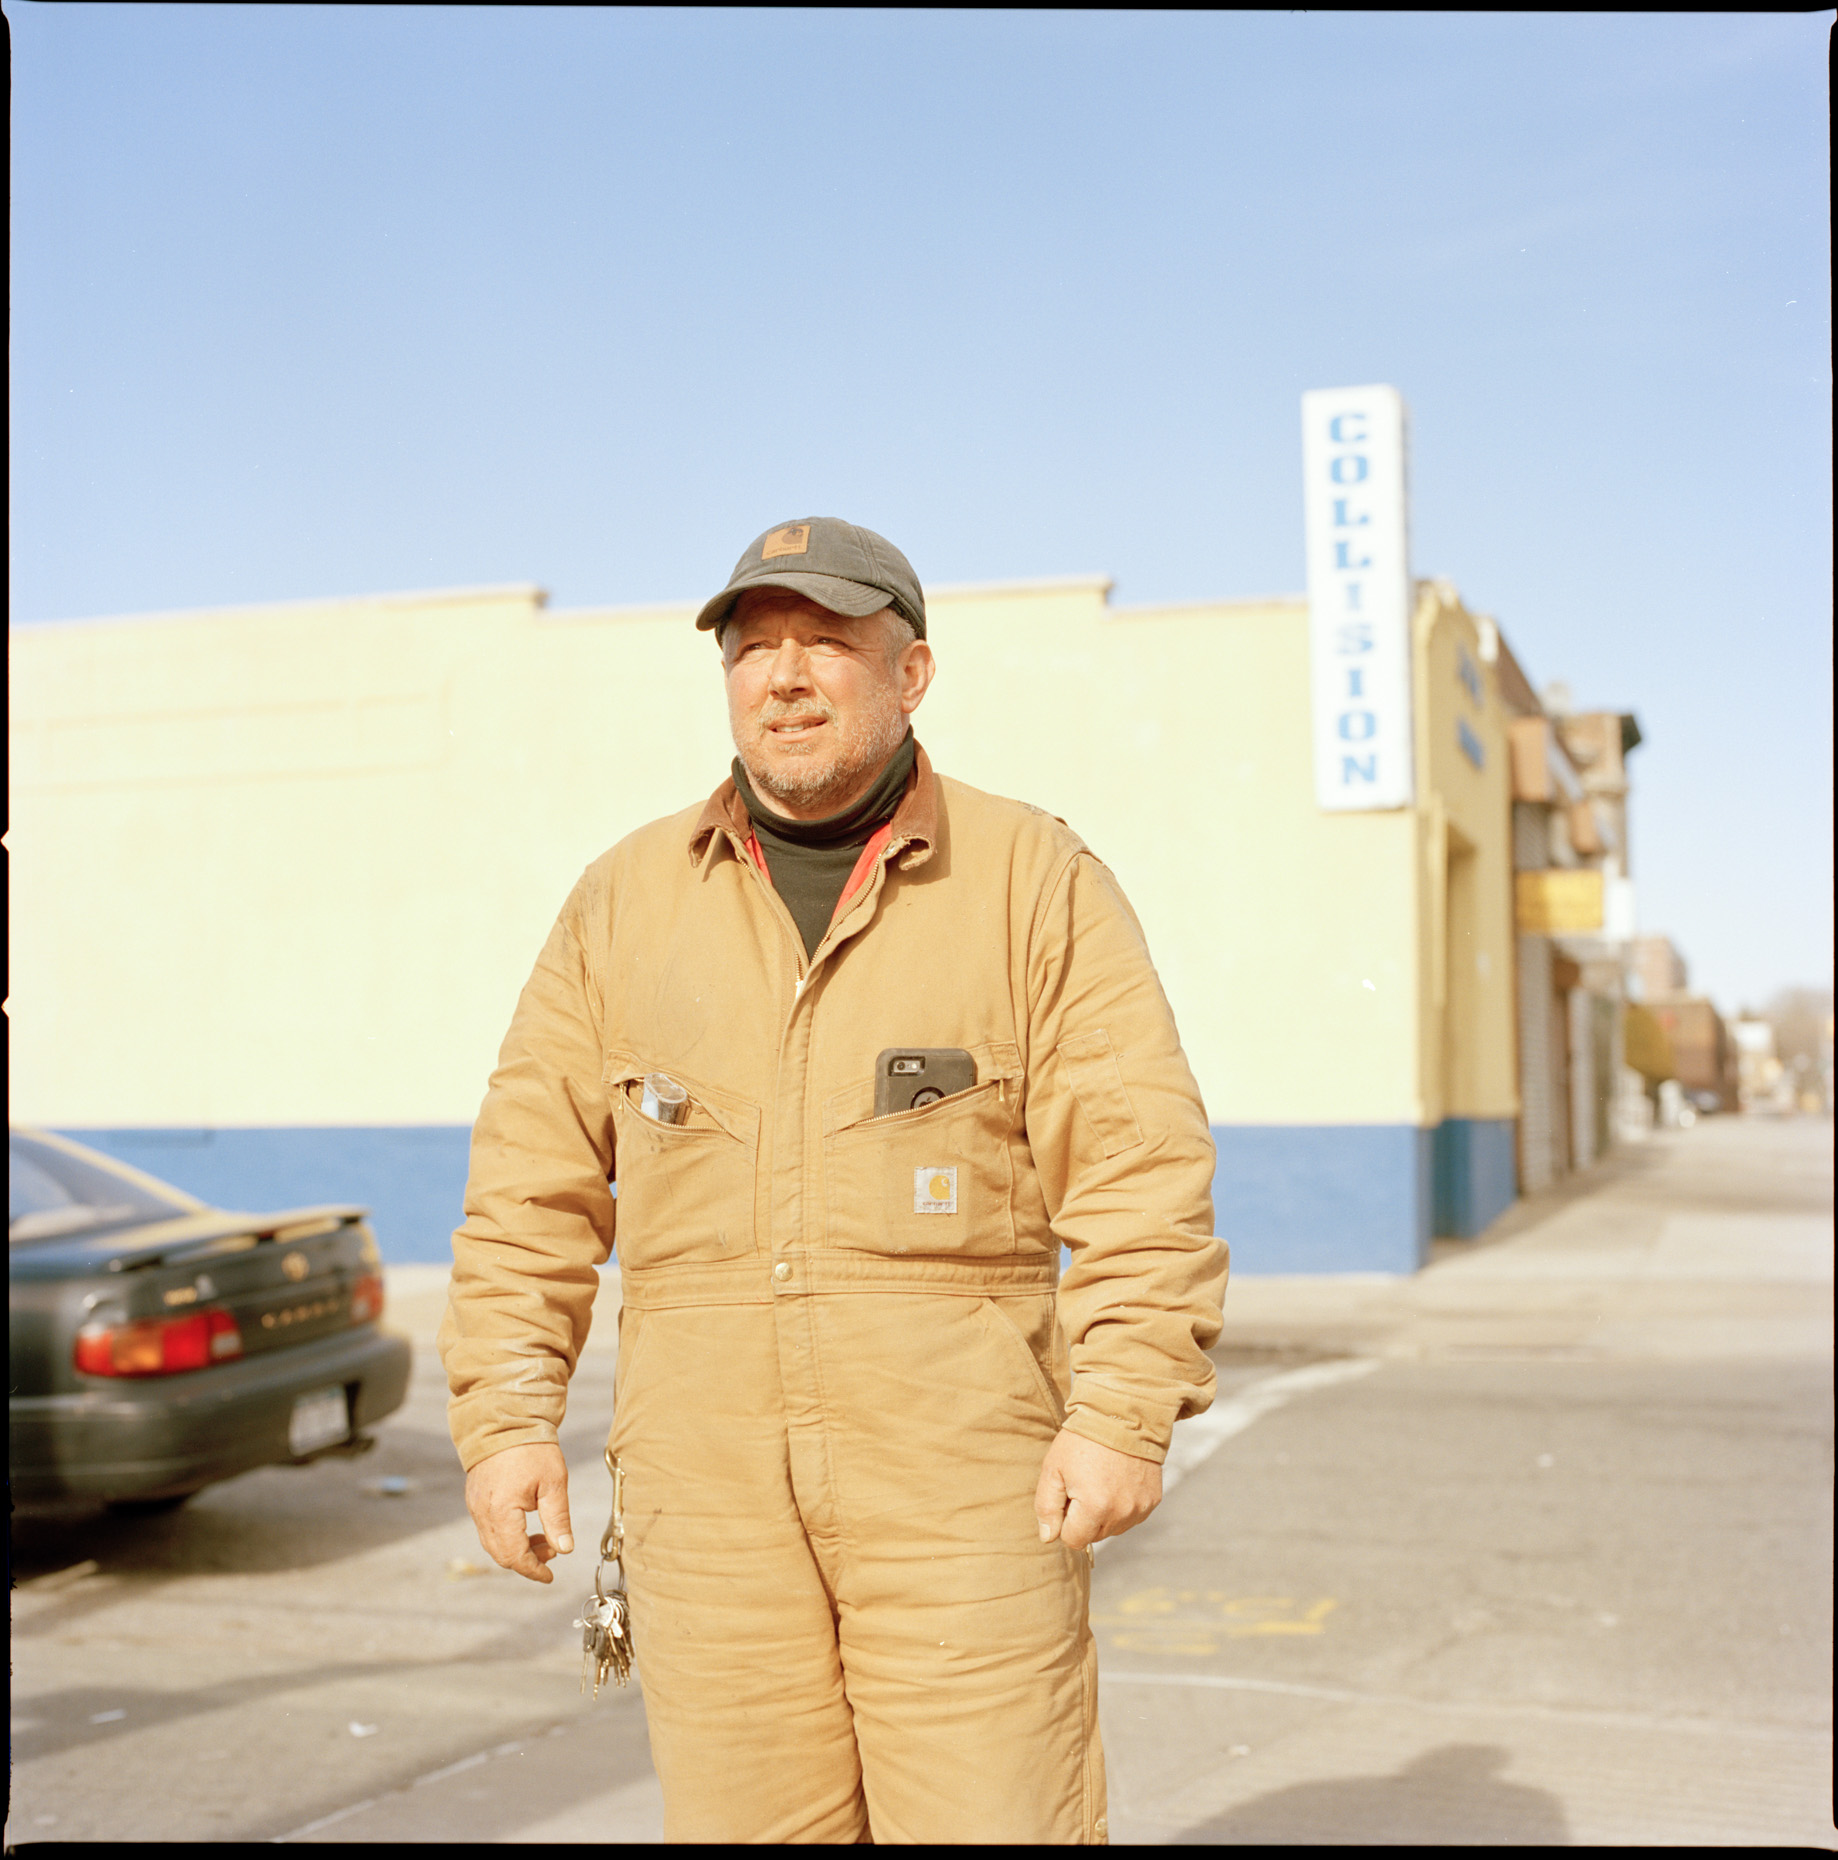 A Mechanic called Dave allows me to take his Portrait in Bensonhurst, Brooklyn.